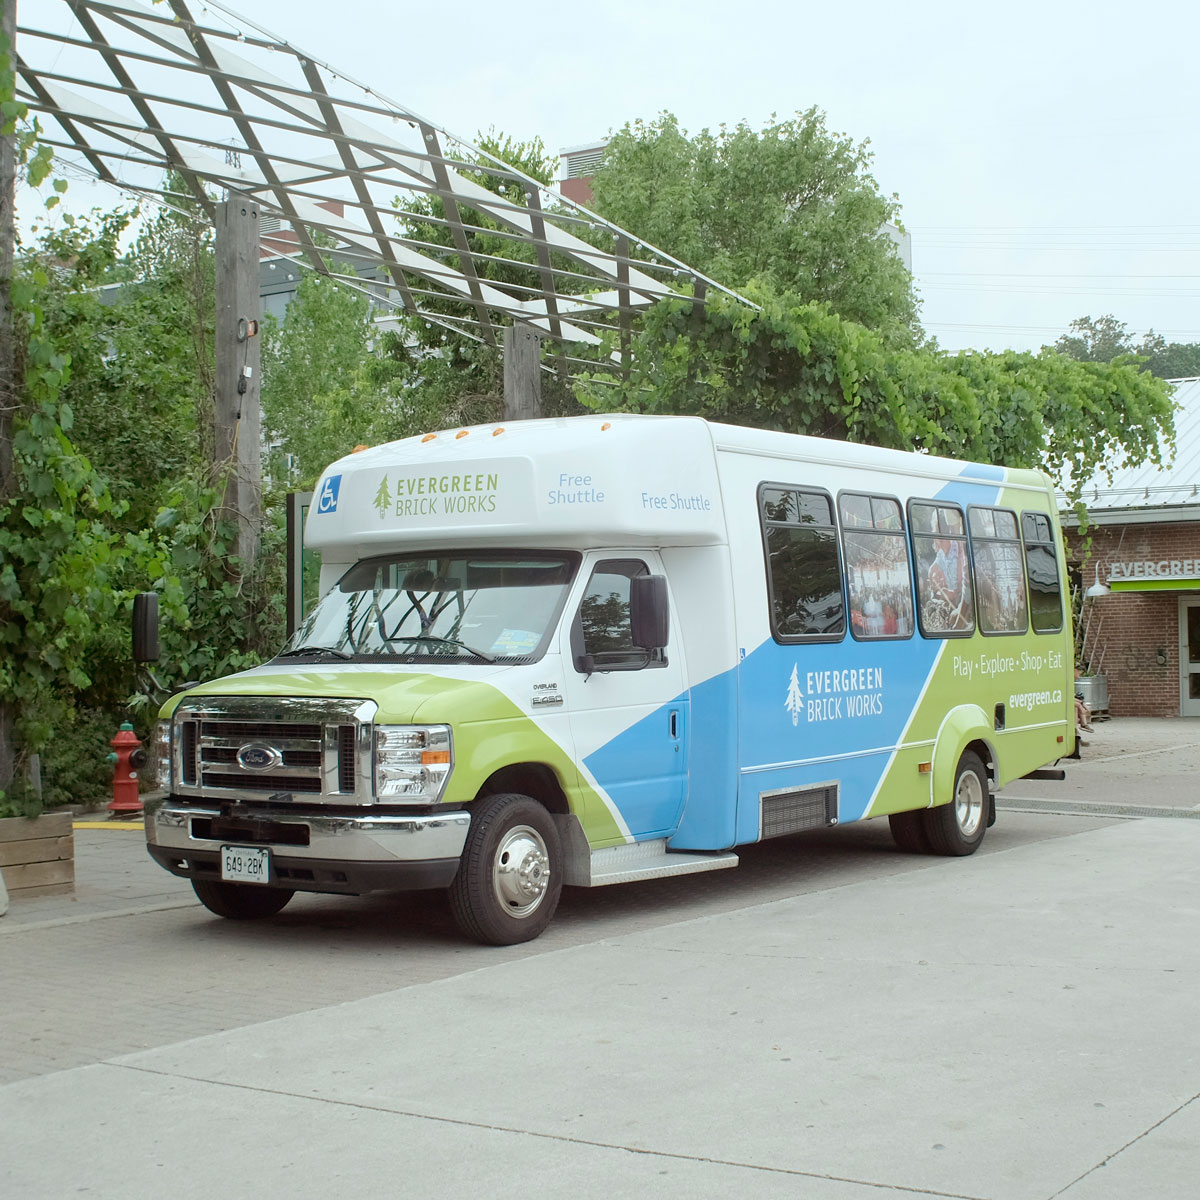 Evergreen Brick Works Shuttle Bus